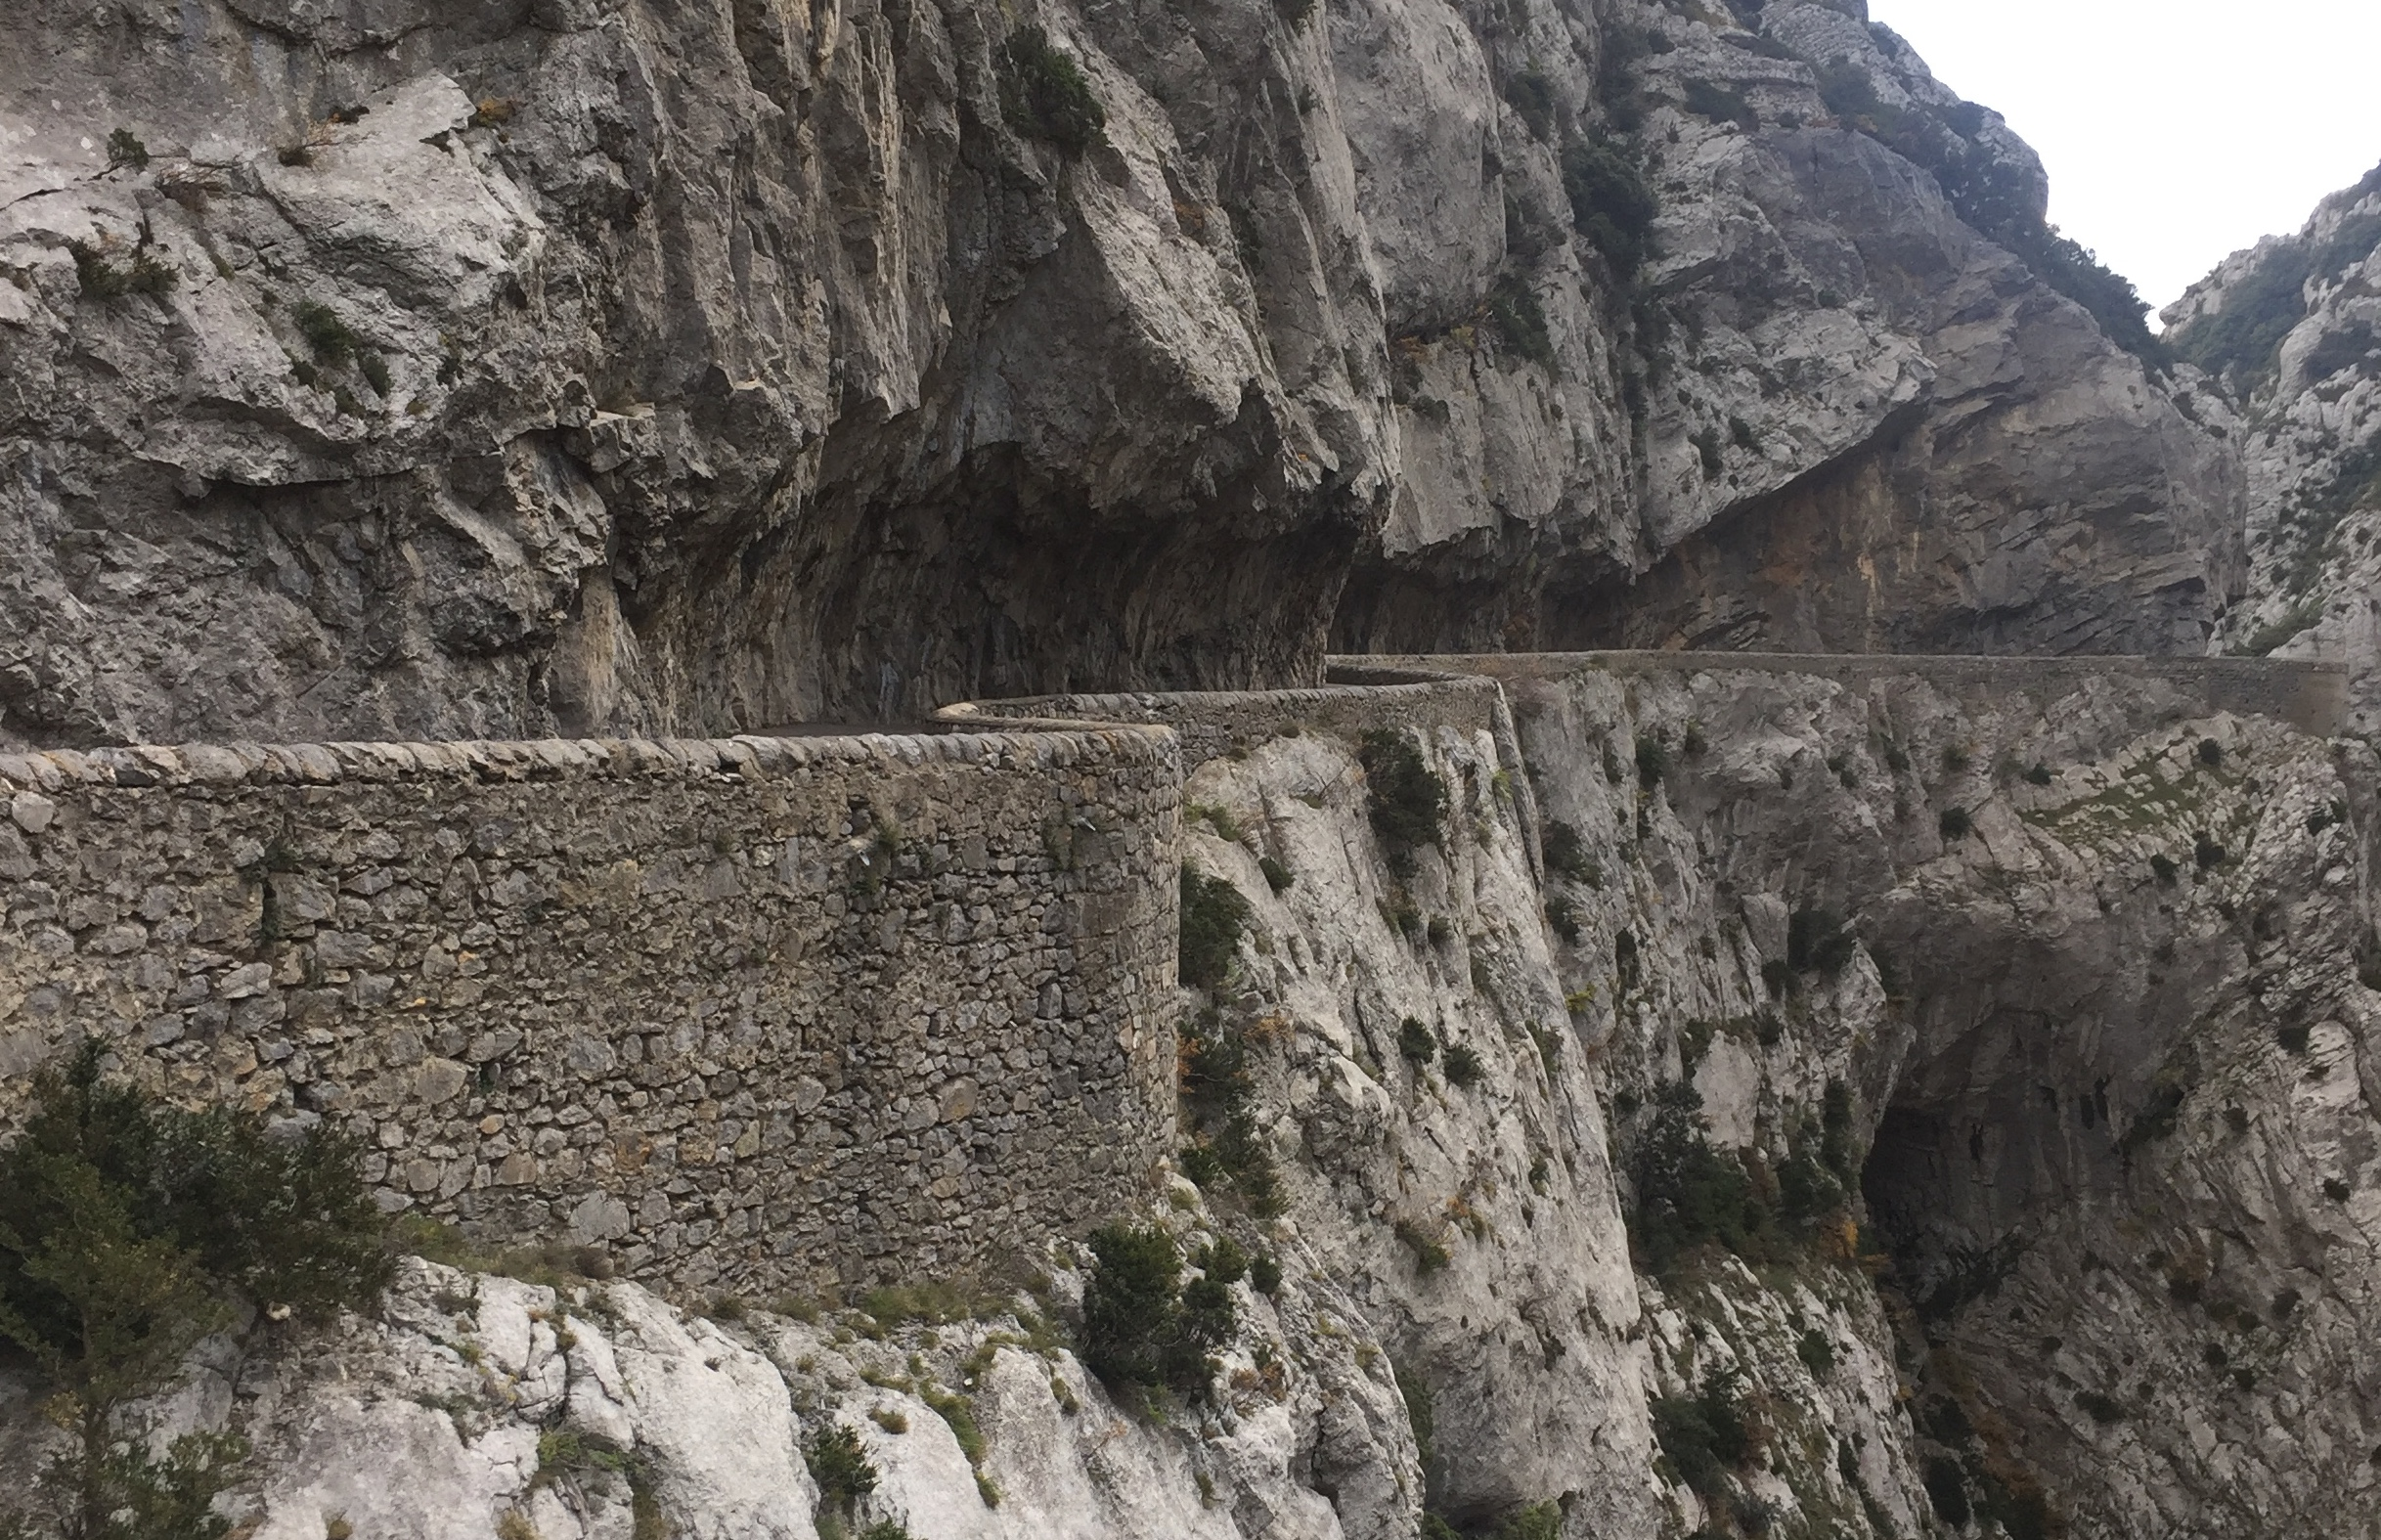 Balcony roads are roads cut into the sides of sheer cliffs